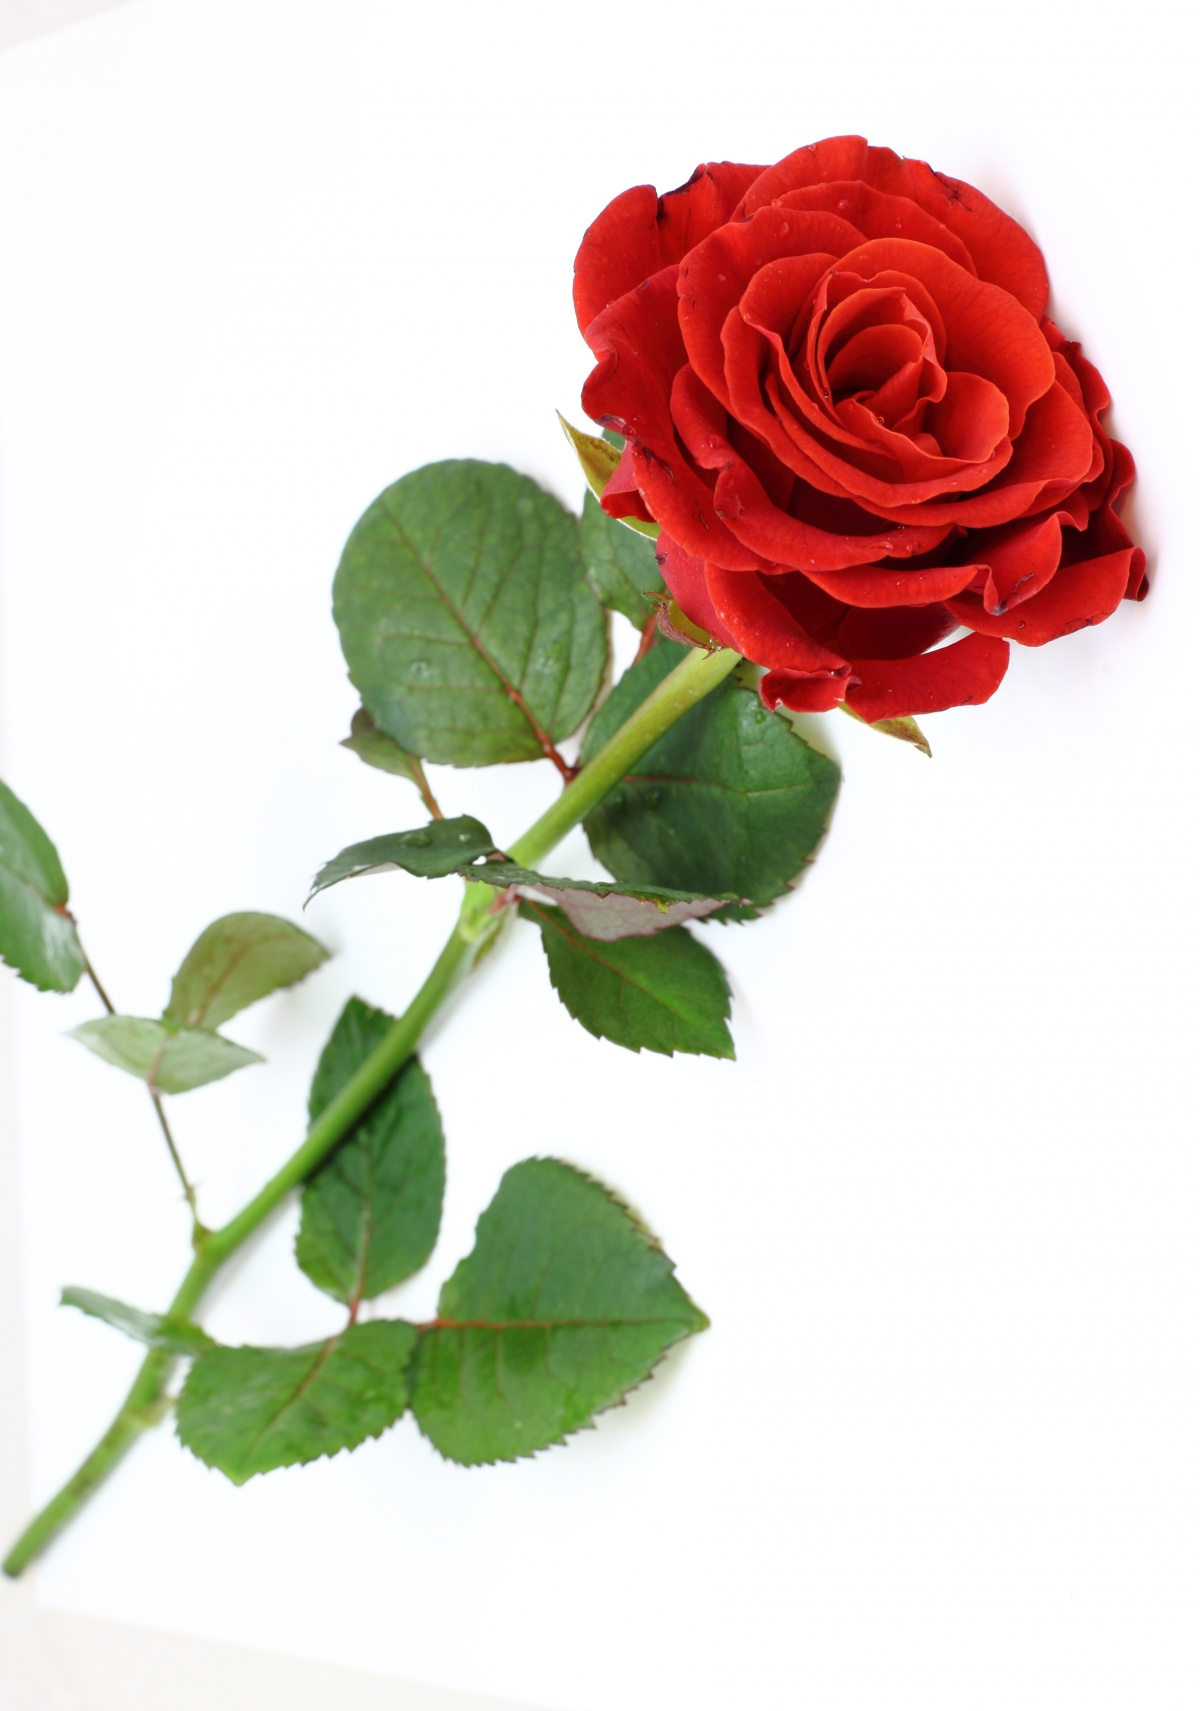 Red rose arbeen fan art 38512668 fanpop - Red rose flower hd images ...